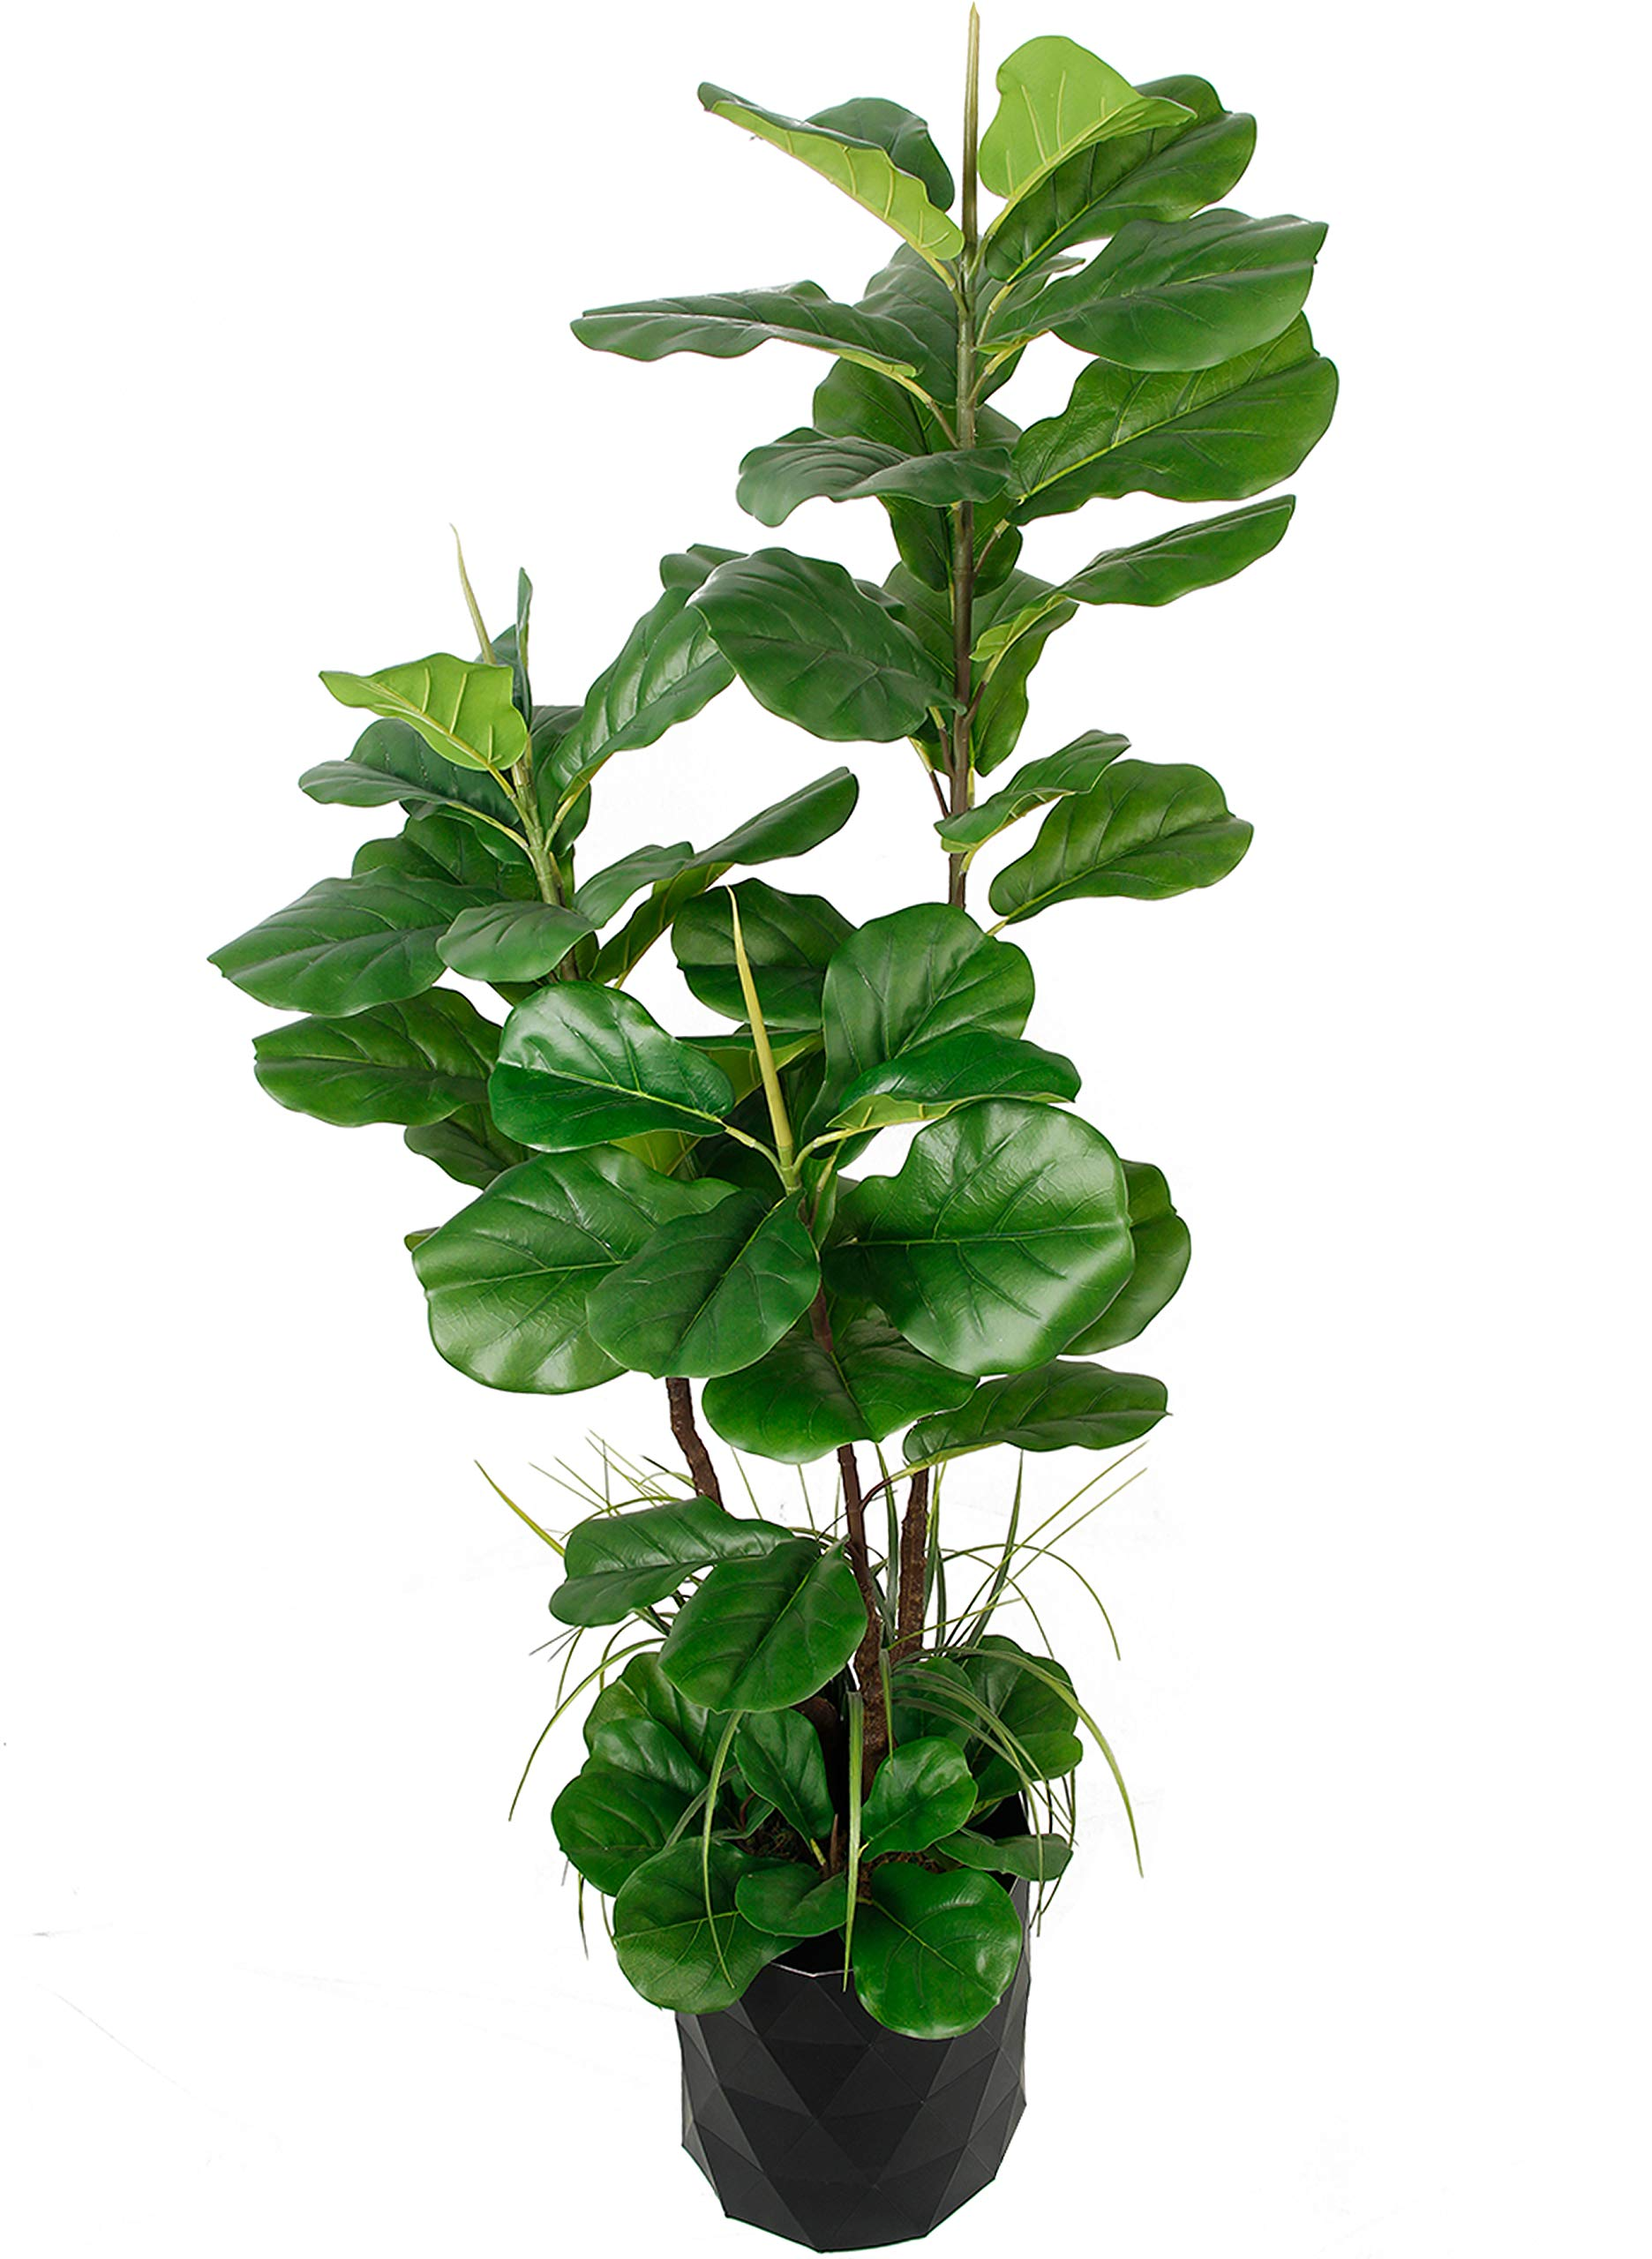 """Deluxe 66"""" Premium Fiddle Leaf FIG Artificial Tree + Fiddle Leaf and Tropical Grass Foliage in 8"""" Base + 12"""" Plant Pot Skirt."""